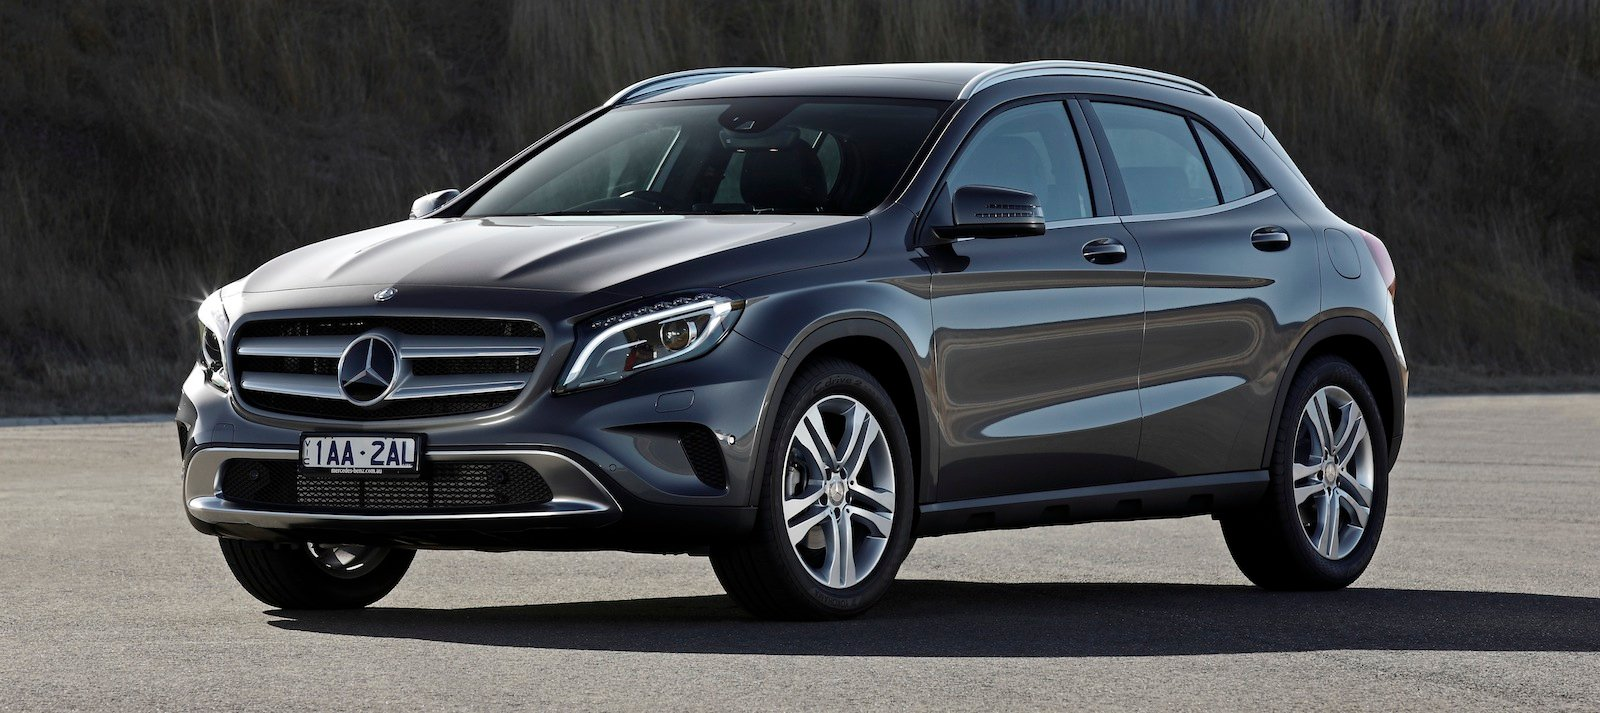 Mercedes benz to hunt luxury rivals with expanded suv for Expensive mercedes benz suv